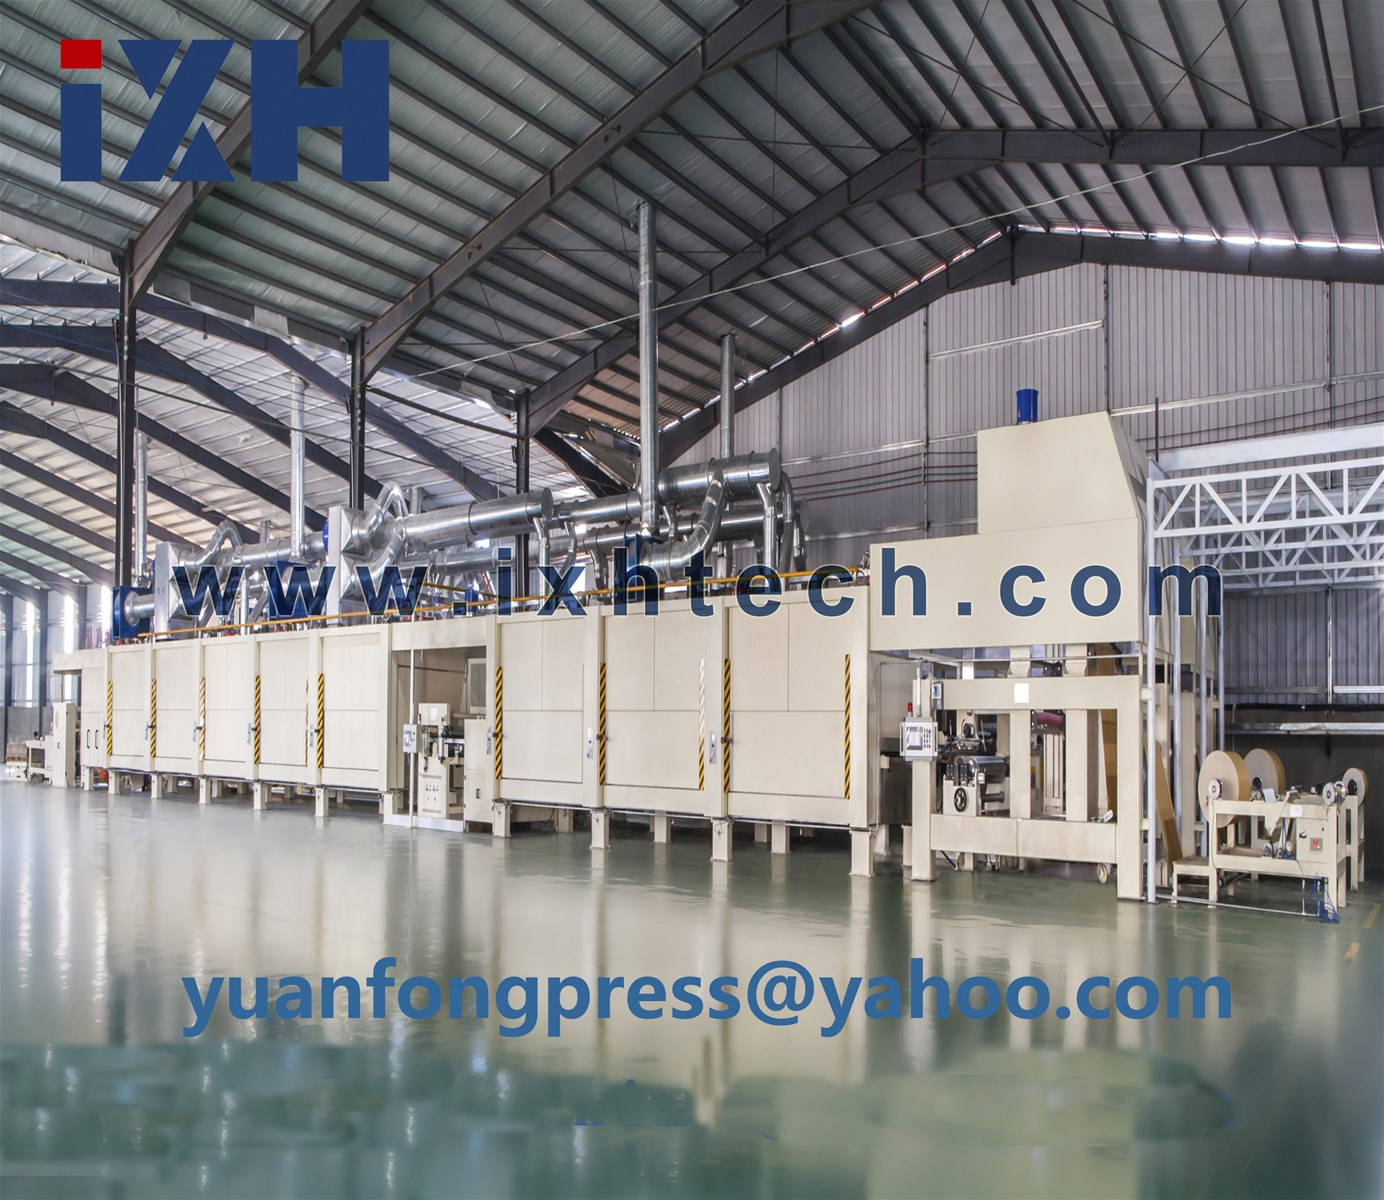 melamine paper impregnated line of top quality and best service